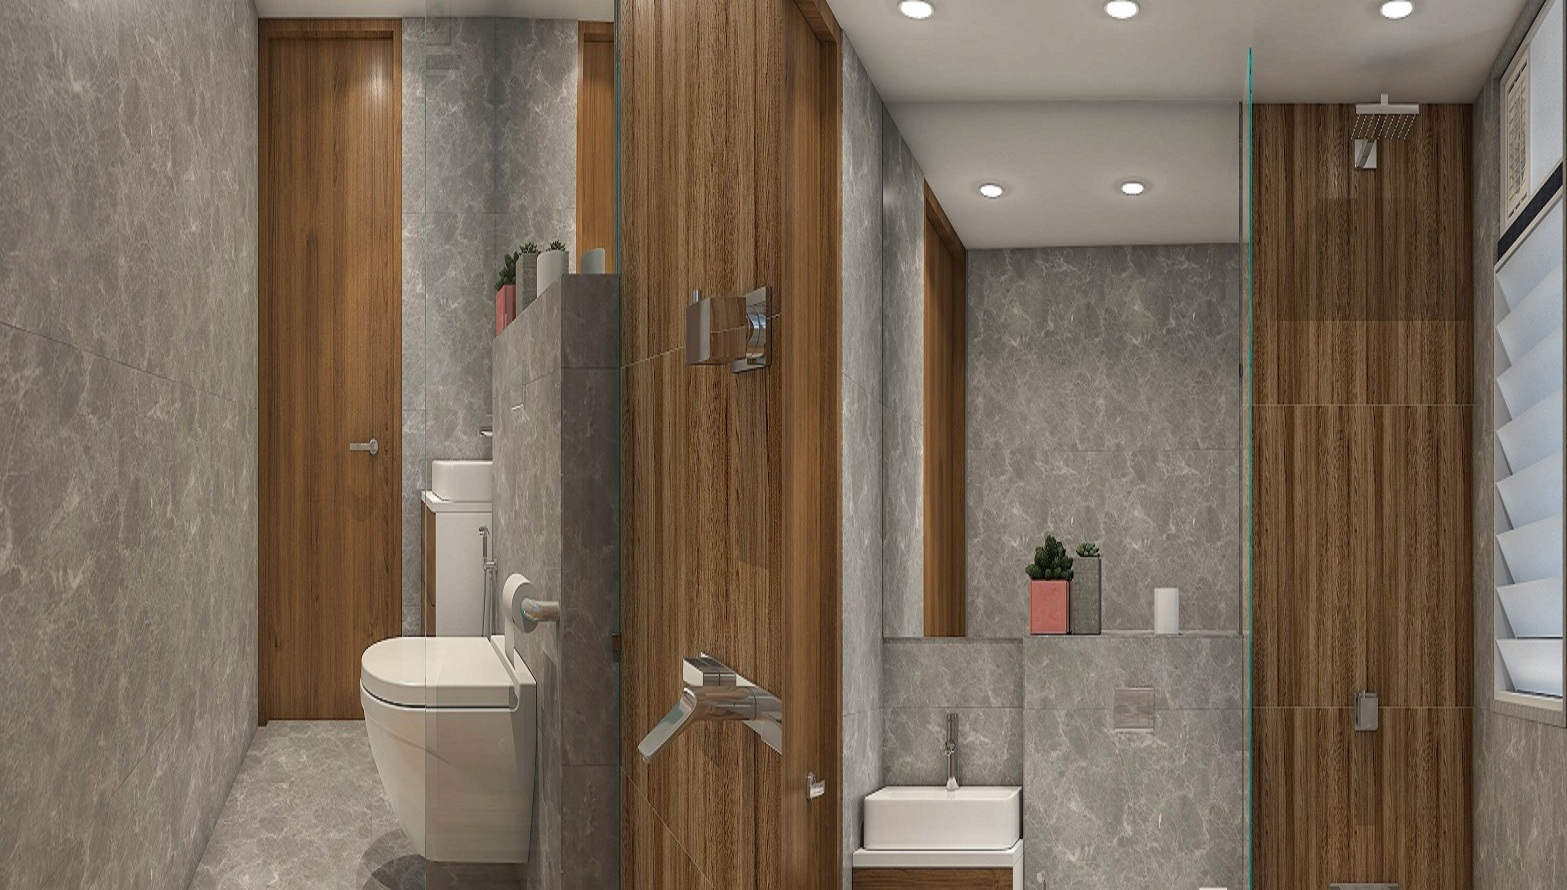 mayfair codename sara powai project apartment interiors4